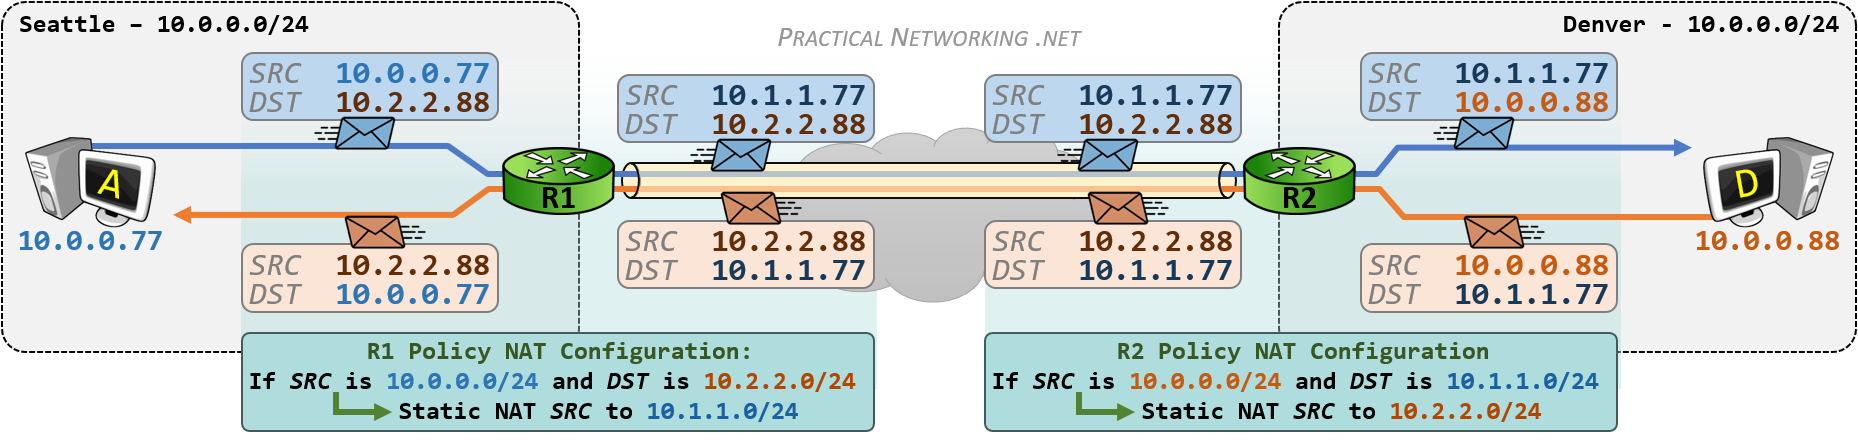 VPN Overlapping Networks - Policy NAT - Full Process